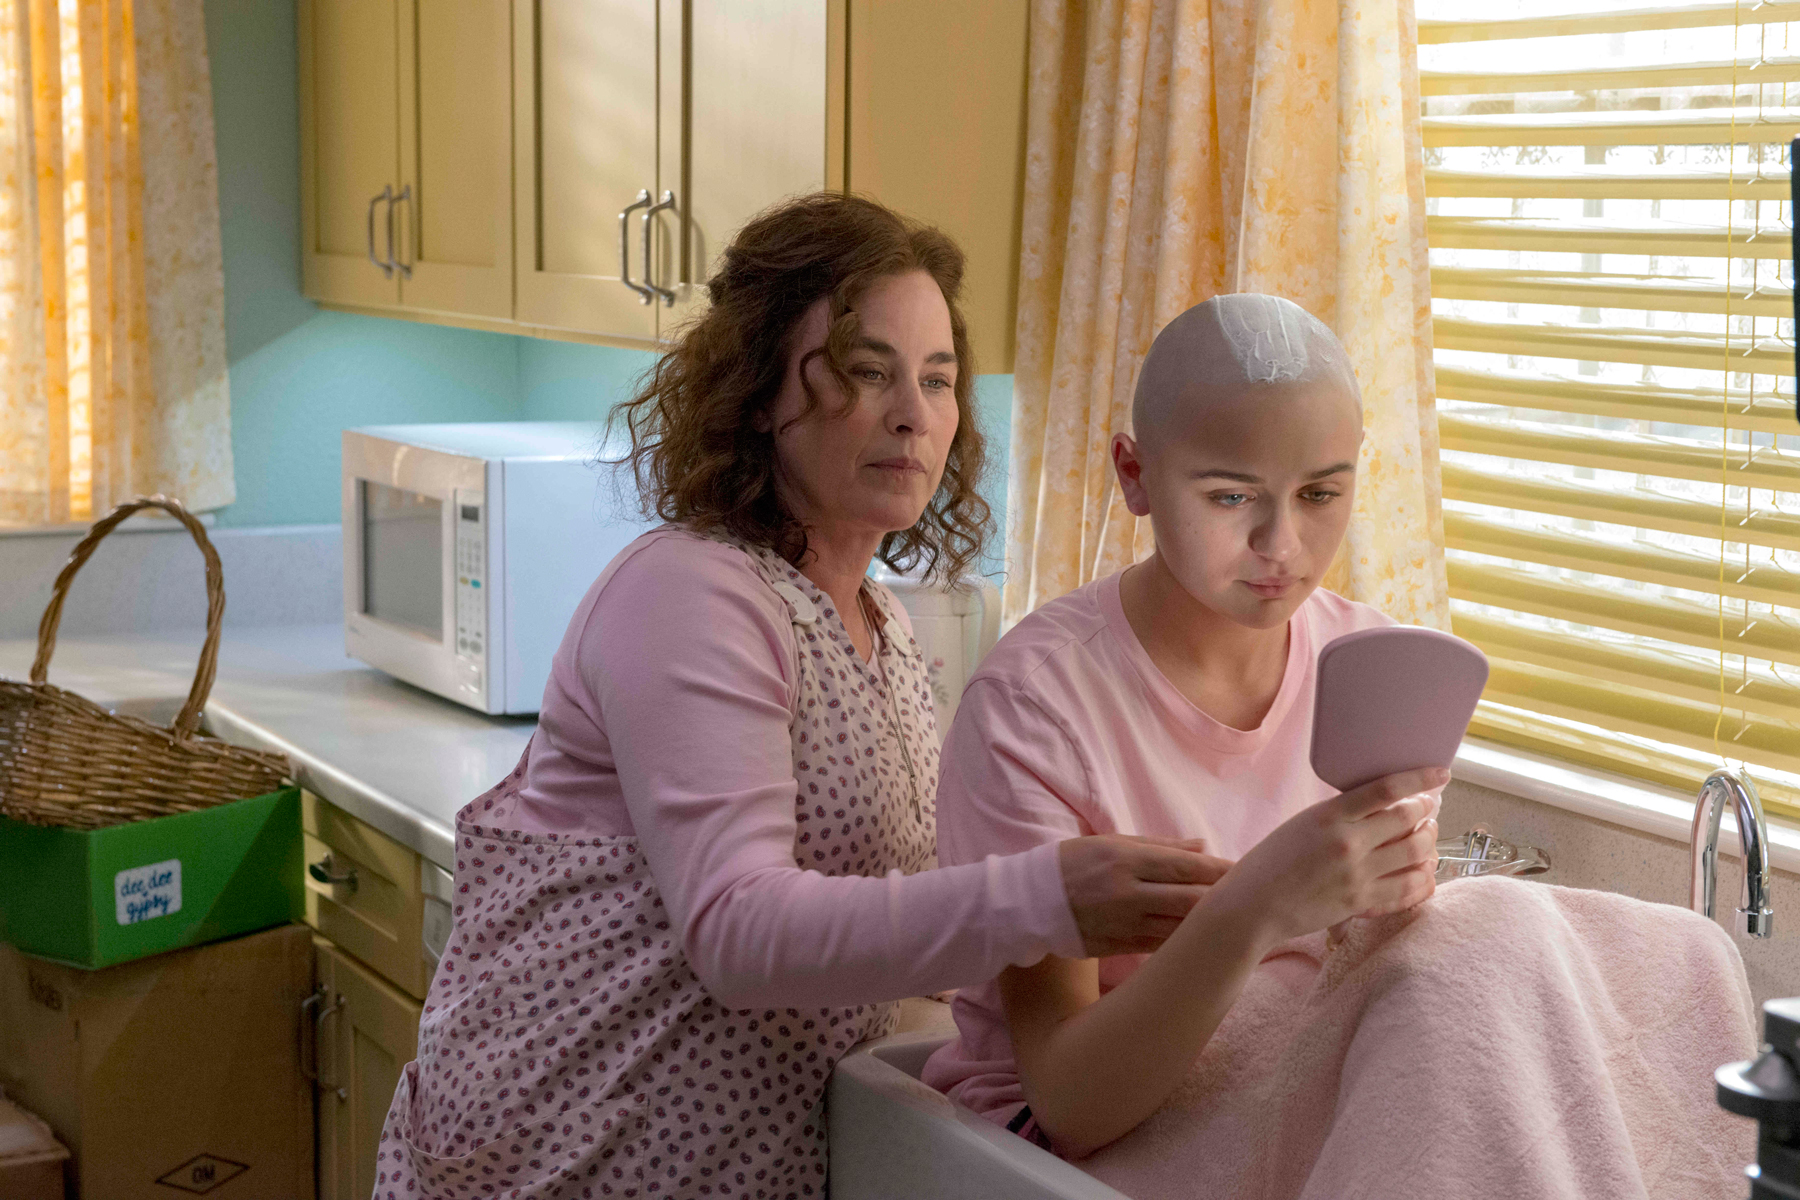 'The Act' depicts the story of Dee Dee Blanchard (Patricia Arquette), Gypsy Rose Blanchard (Joey King). [Photo: Brownie Harris/Hulu]